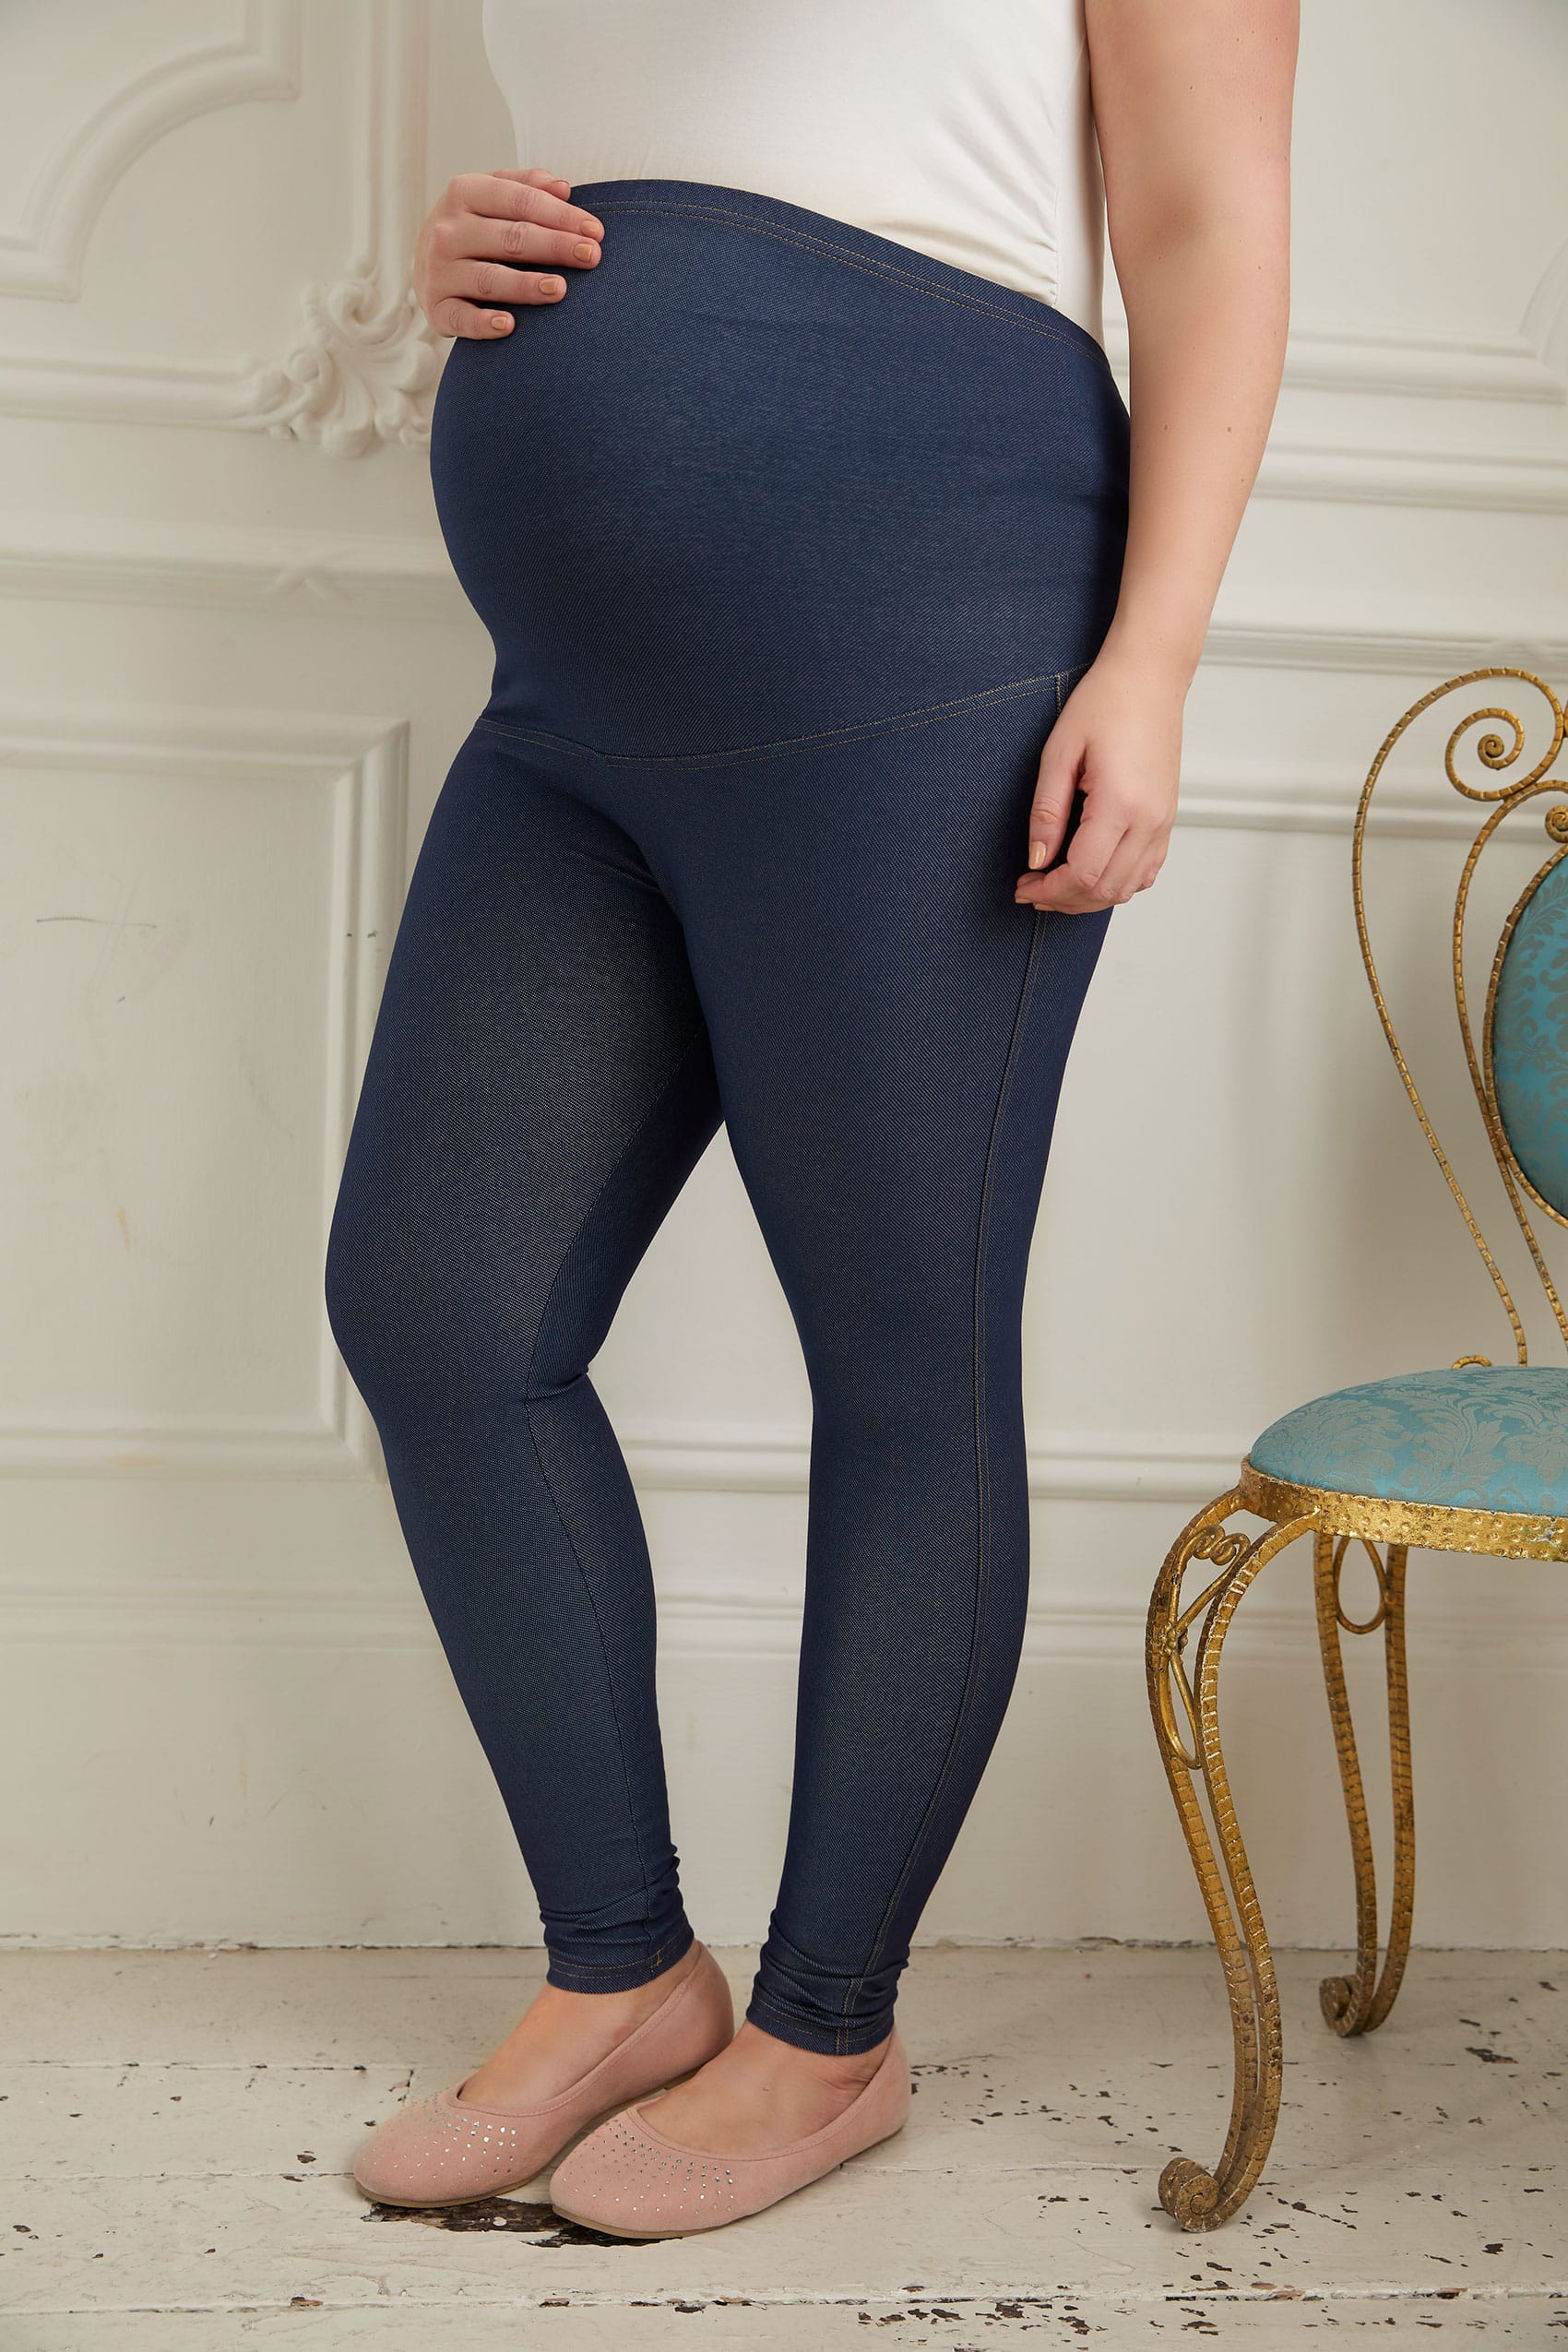 afad17d703ee4 BUMP IT UP MATERNITY Indigo Jeggings With Comfort Panel plus size 16 ...